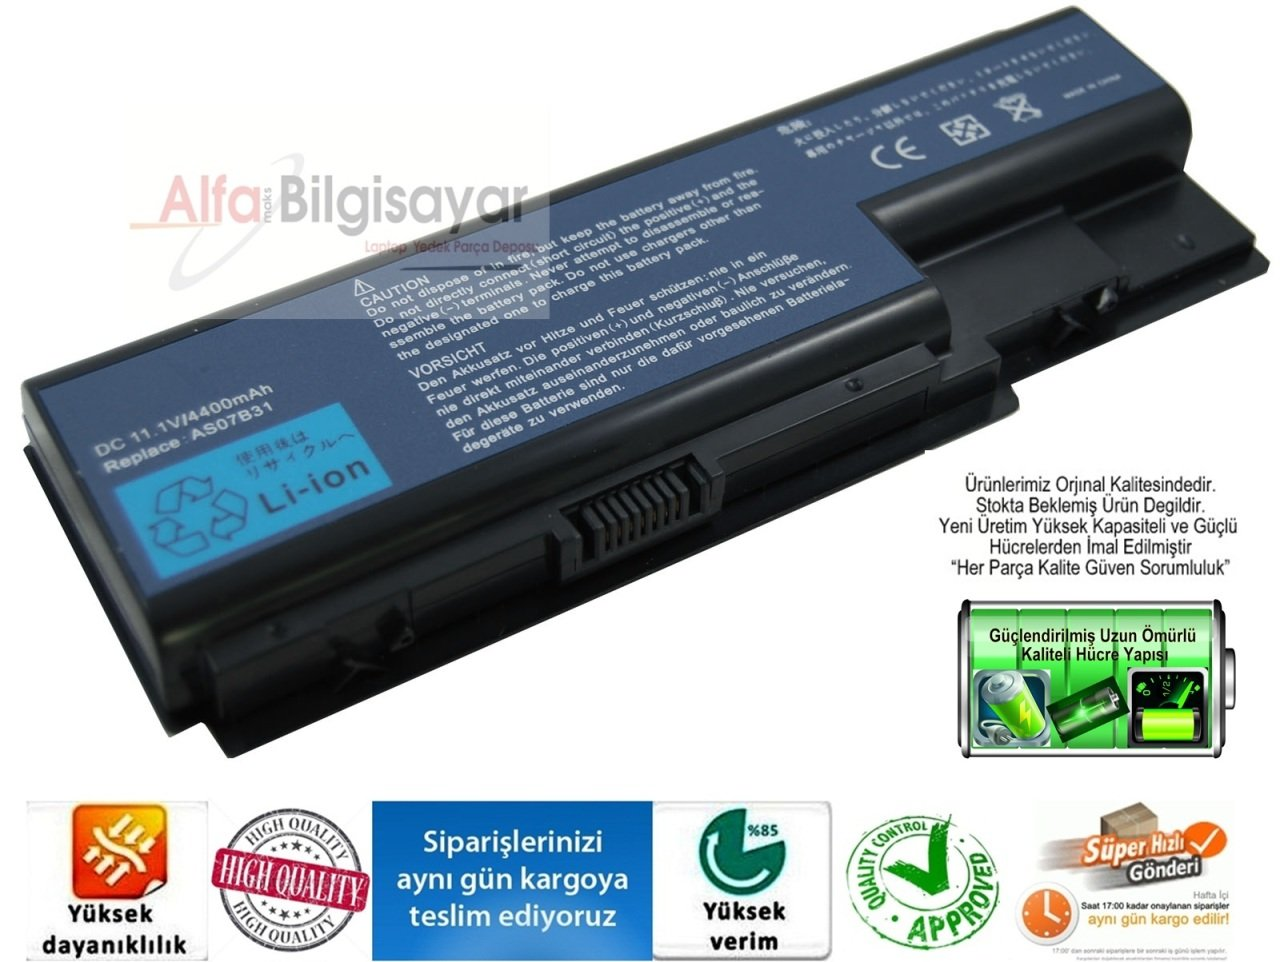 Https St1myideasoftcom Shop Ah 15 Myassets Products 002 6 Keyboard Toshiba Satellite L600 L630 L630d L635 L635d L640 L640d L645 20090717112756852revision1491772644